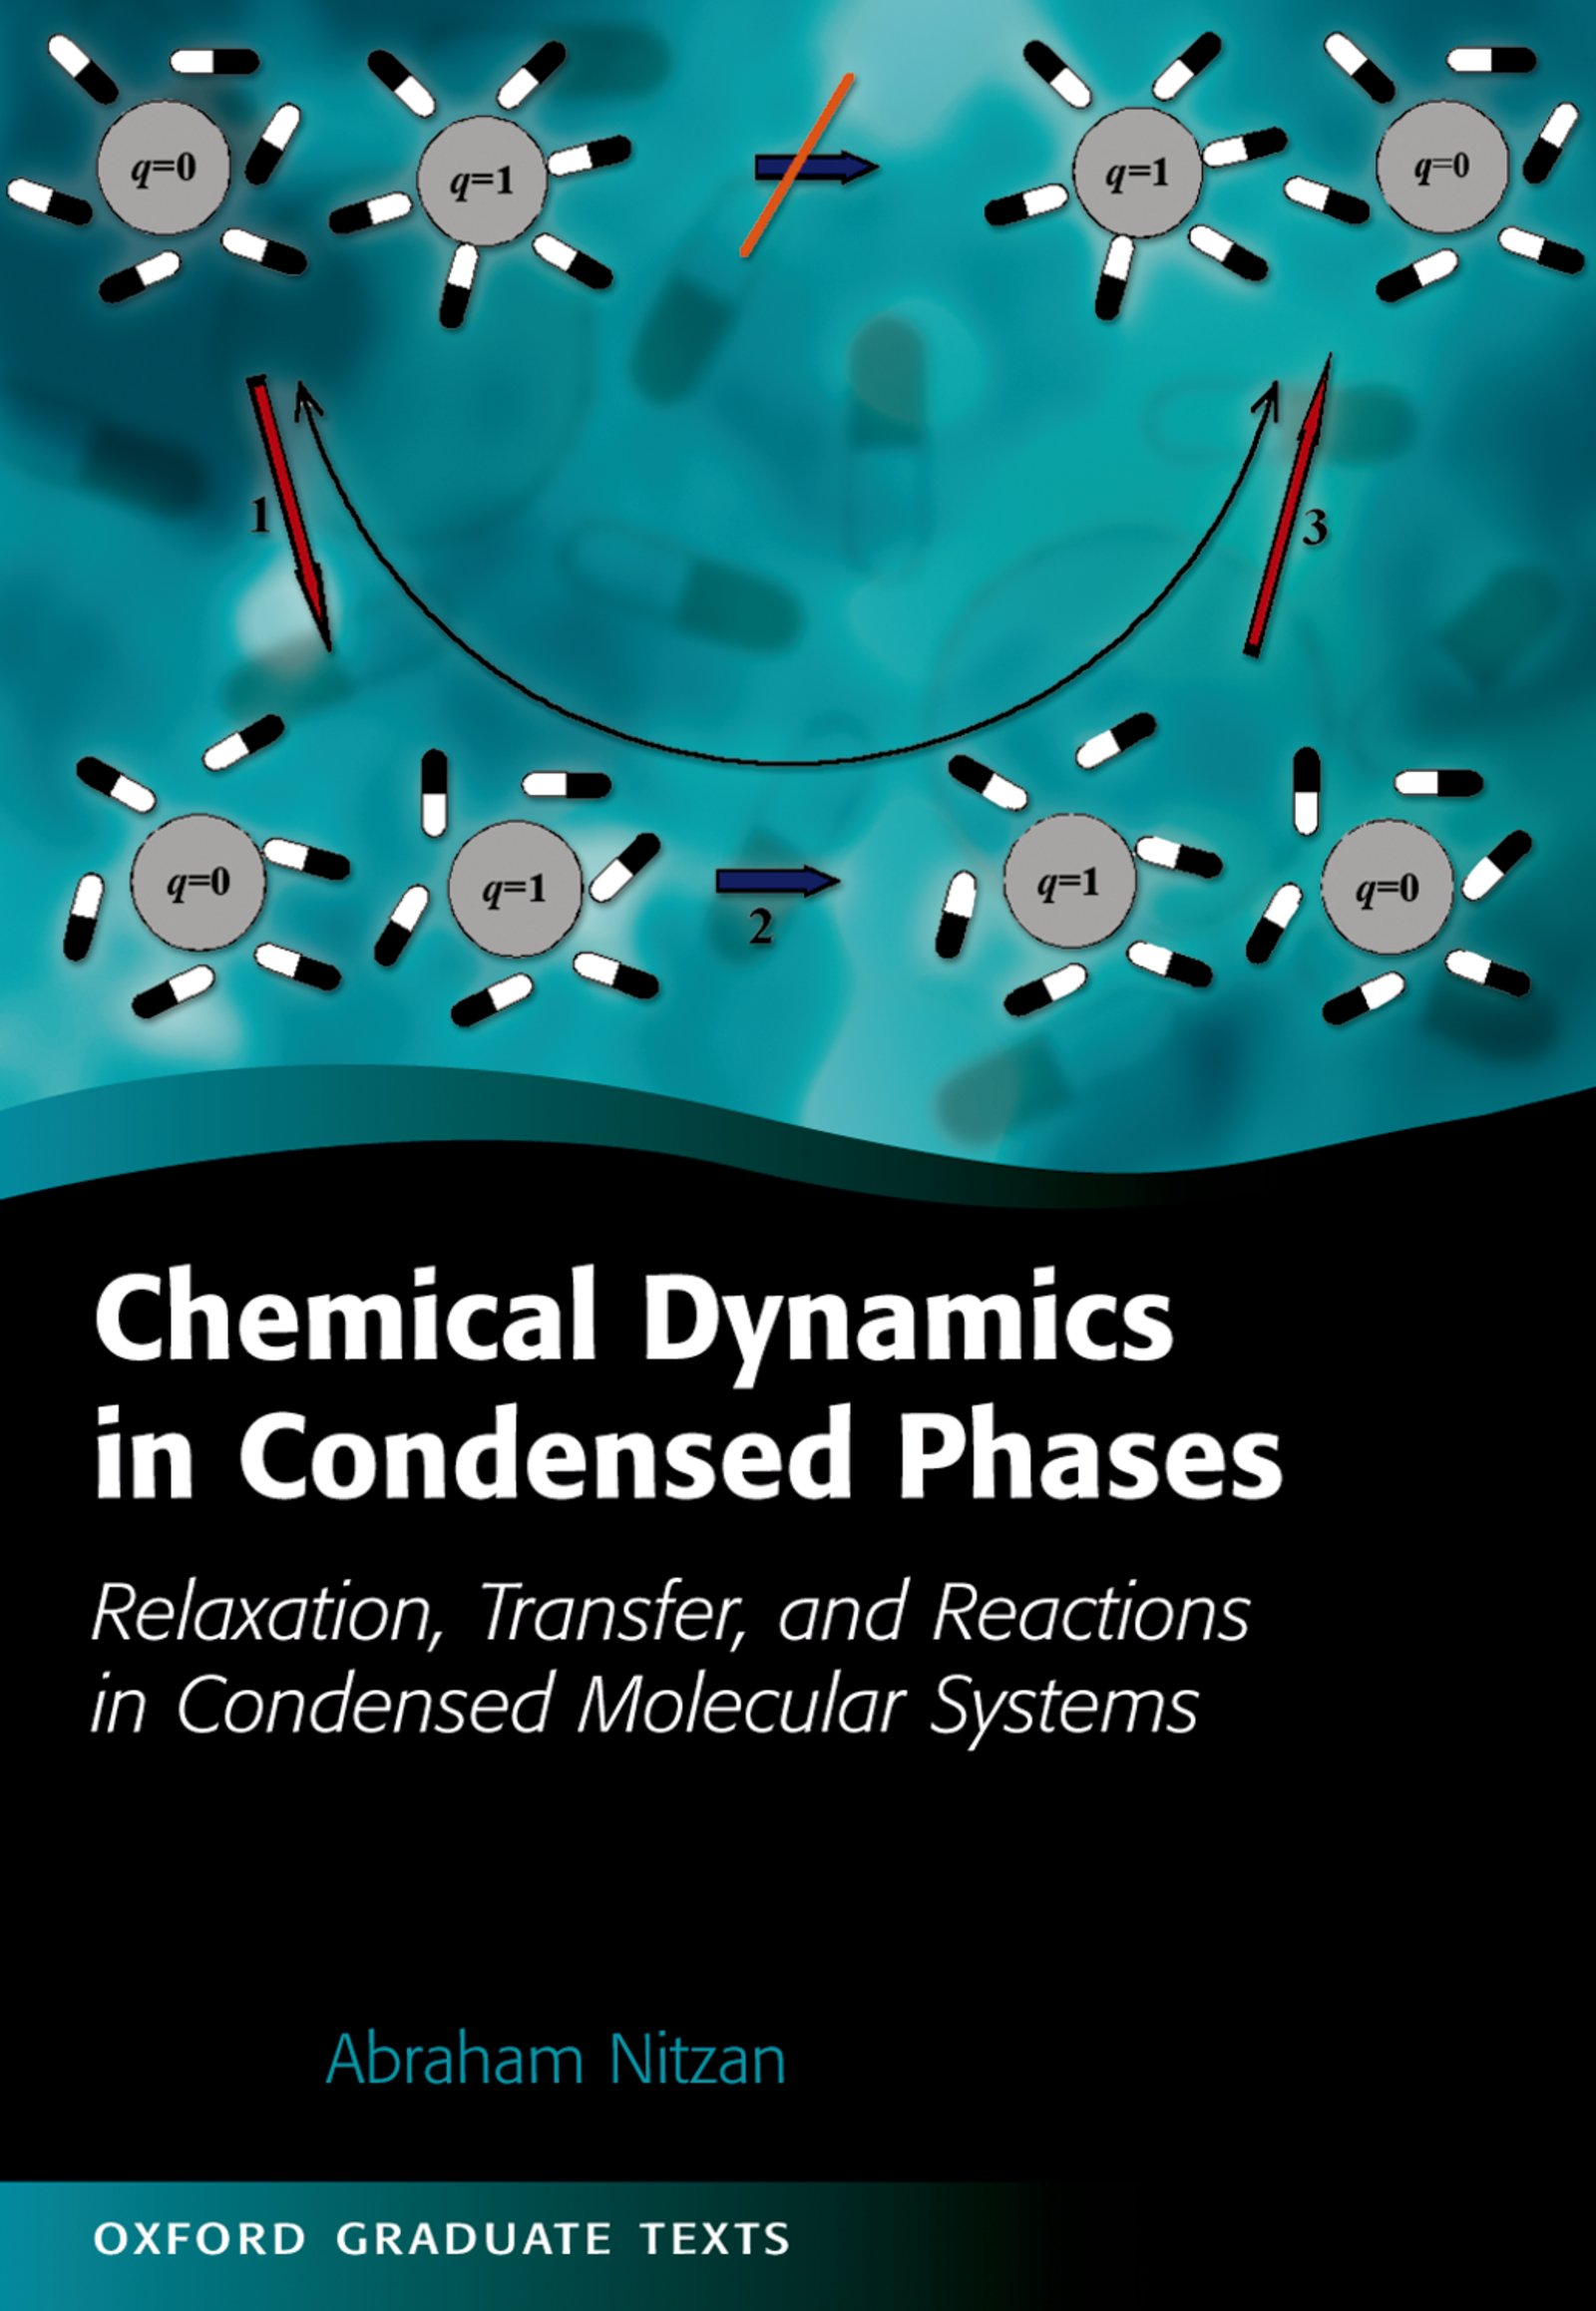 Chemical Dynamics in Condensed PhasesRelaxation, Transfer and Reactions in Condensed Molecular Systems